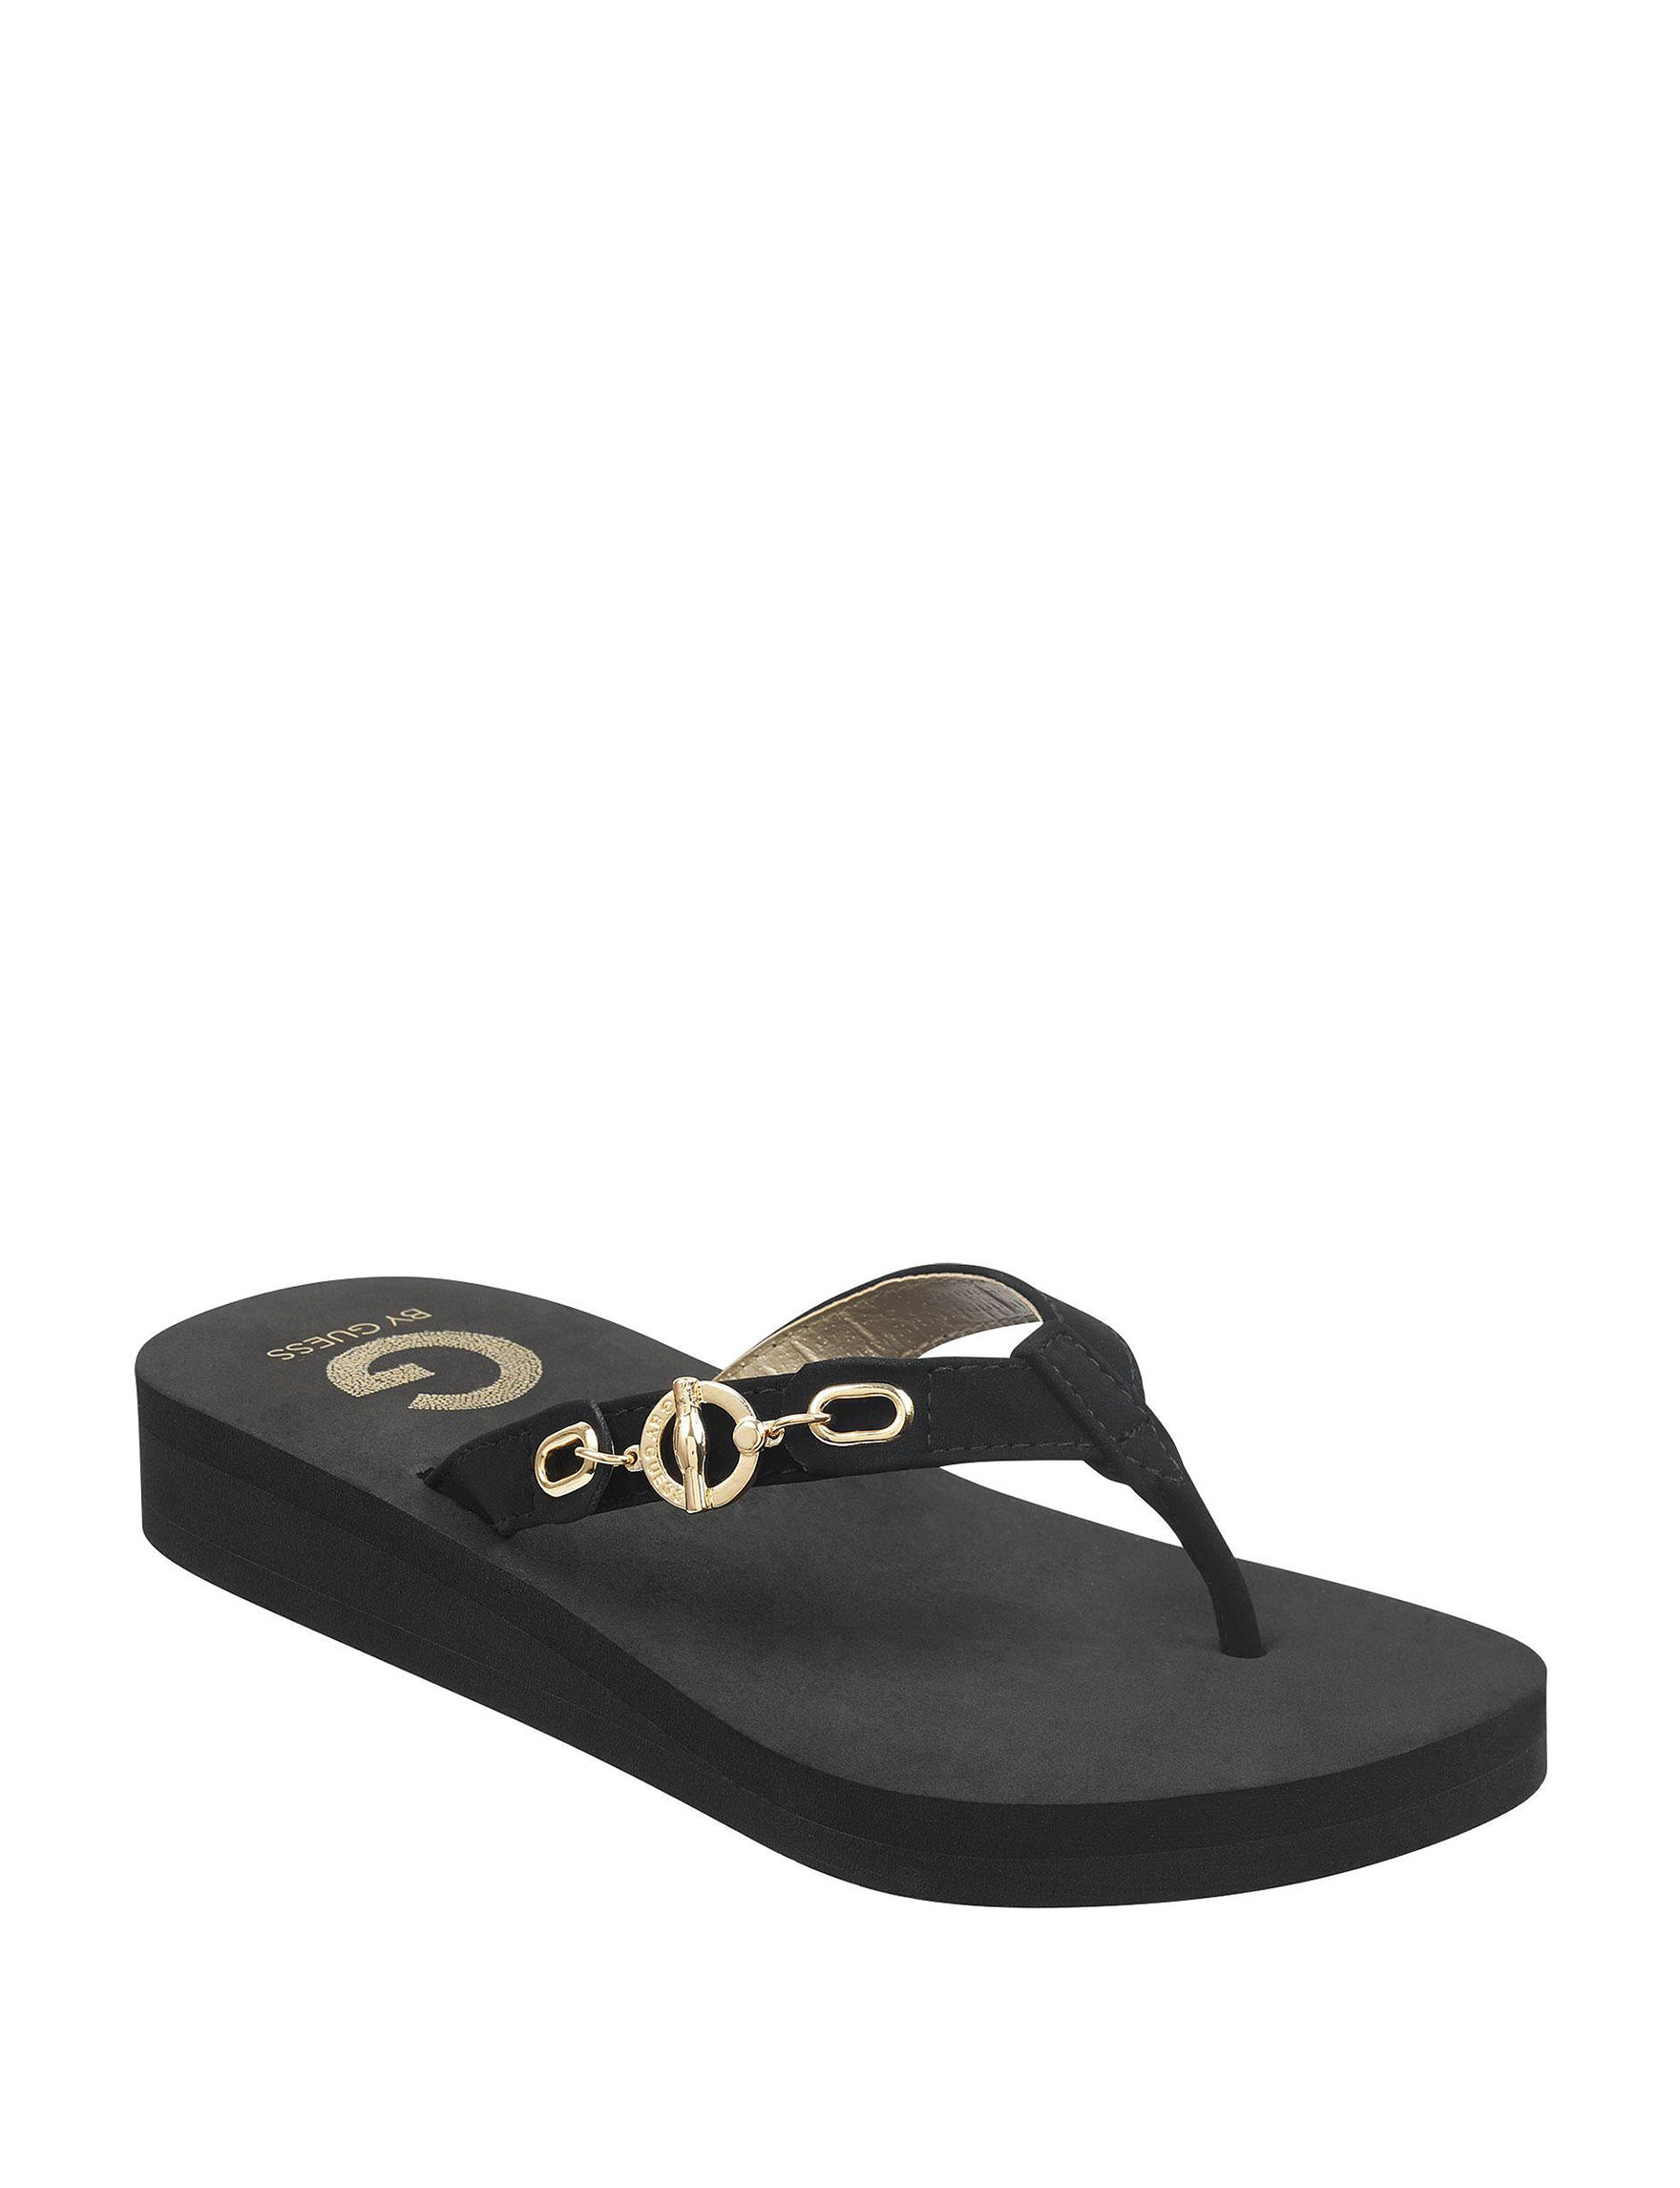 G by Guess Black Flip Flops